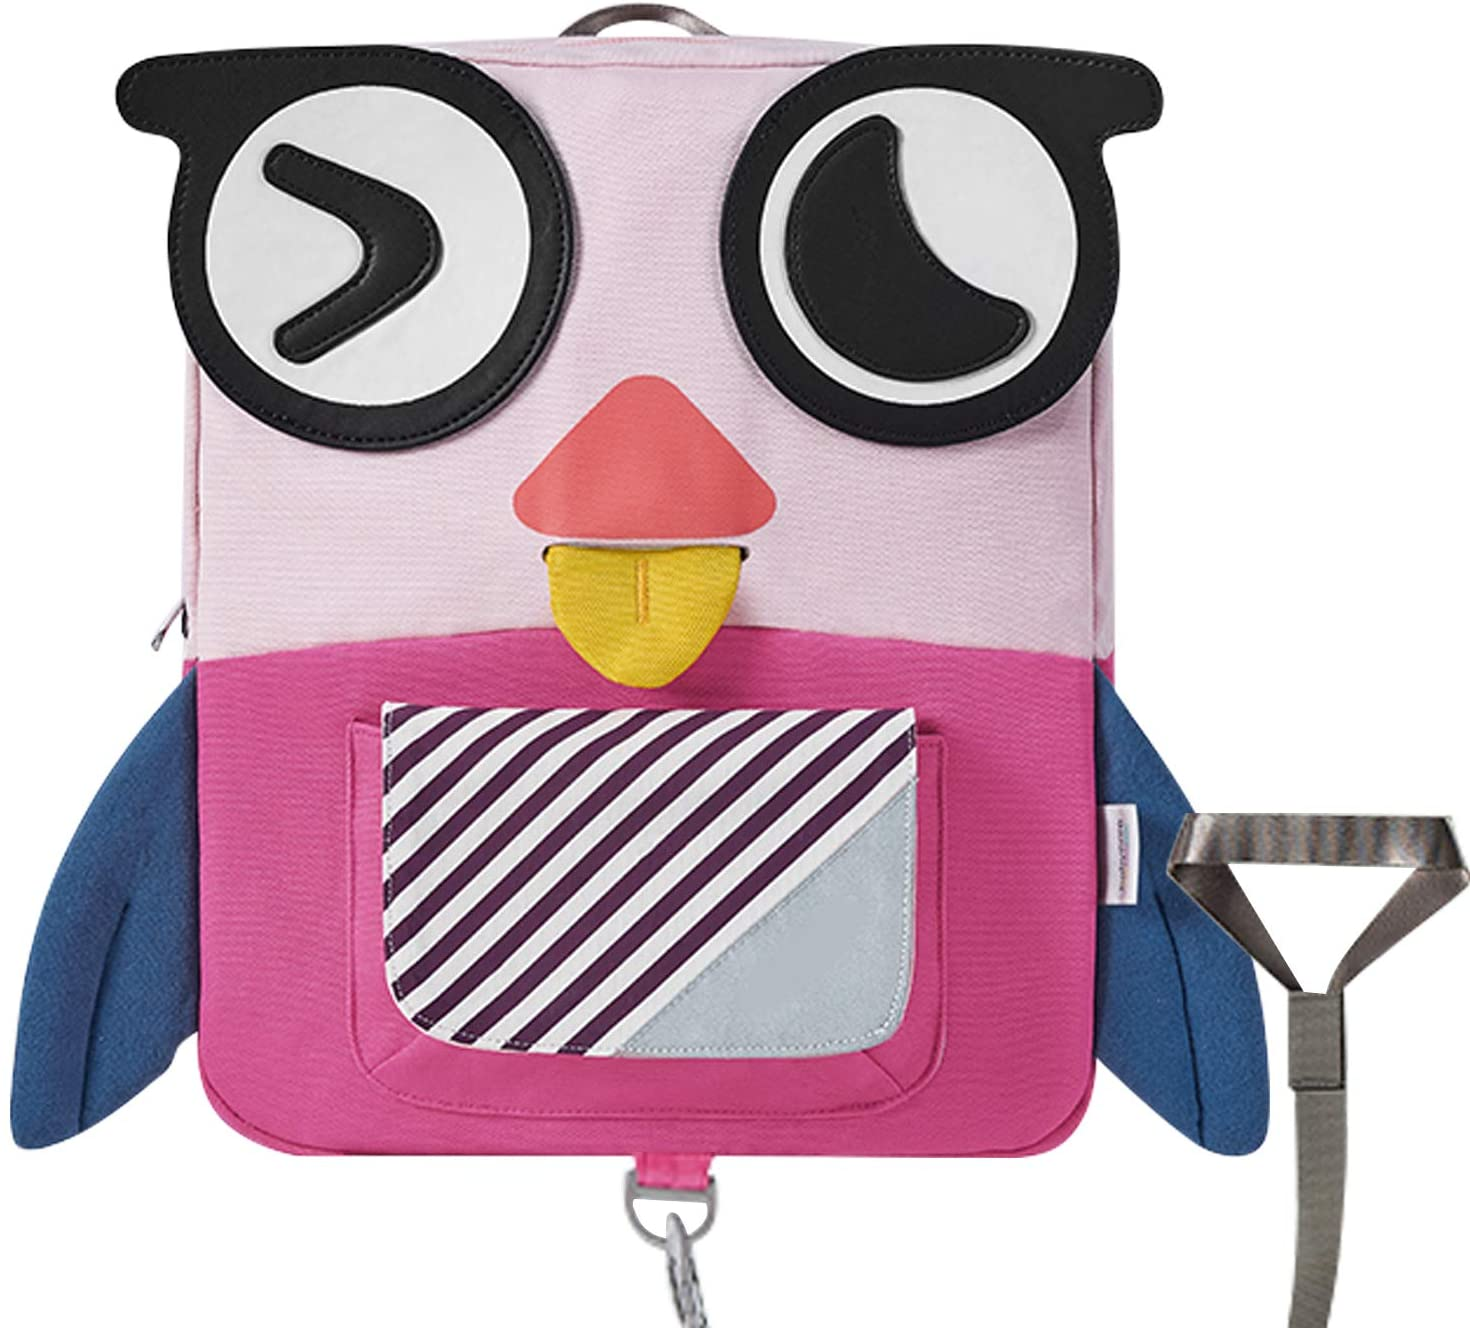 willikiva Kids Toddler Backpack for Boys and Girls Waterproof Children School Bags With Safety Harness Leash (Pink Owl)